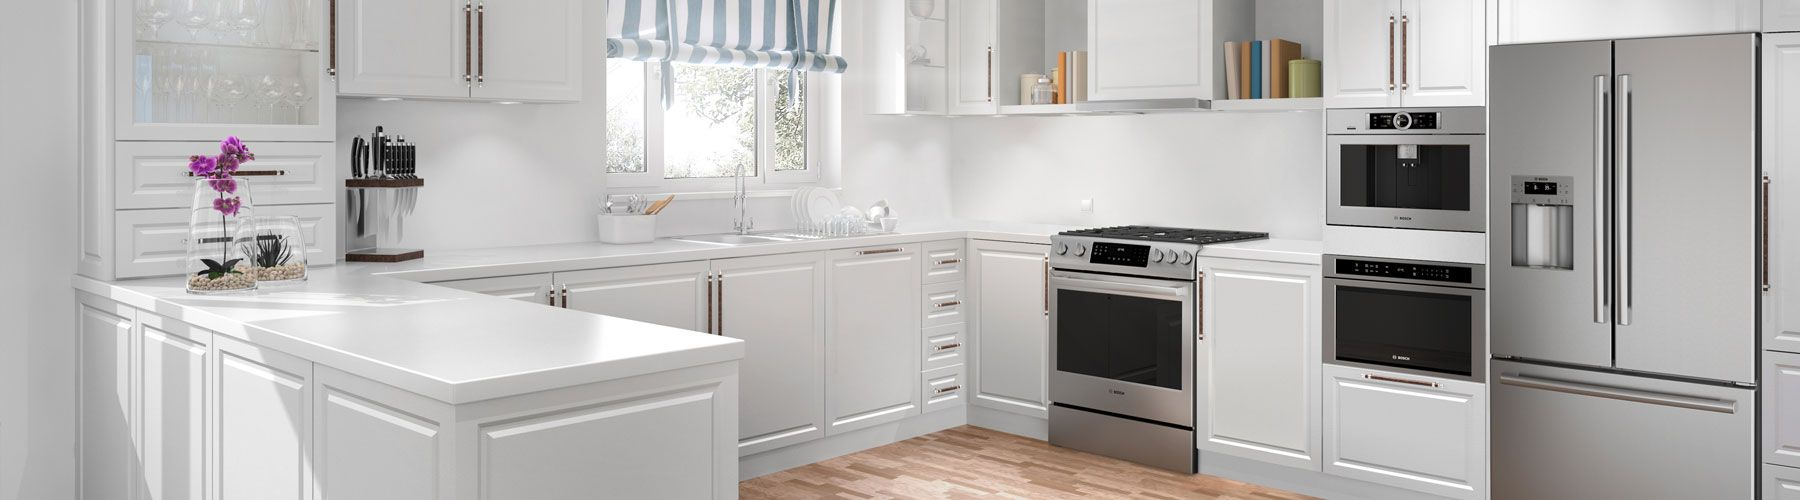 Bosch Lifestyle Kitchen Range and Dishwasher